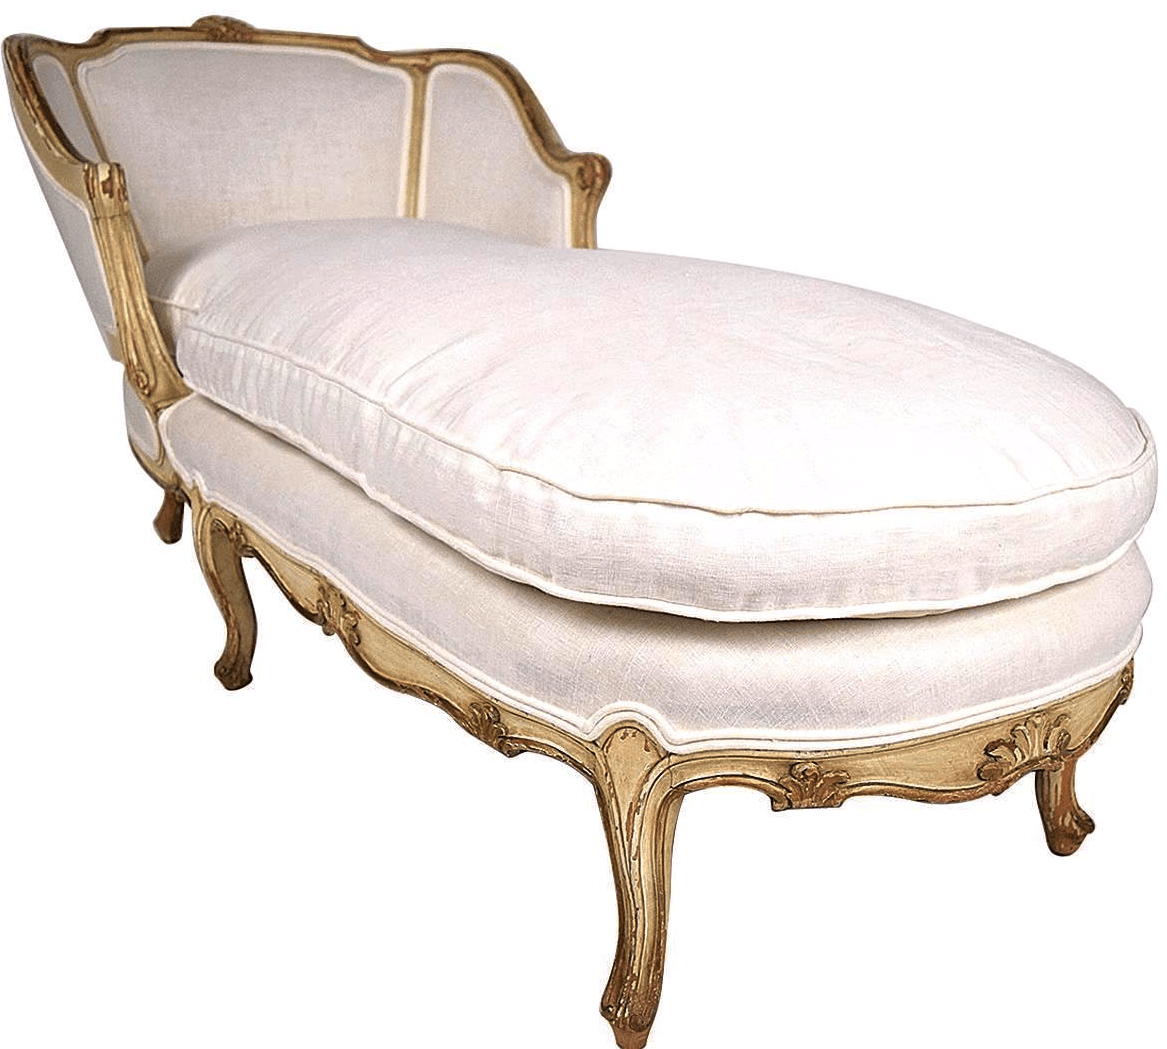 French Chaise 19th C French Louis Xv Chaise Lounge Chairish